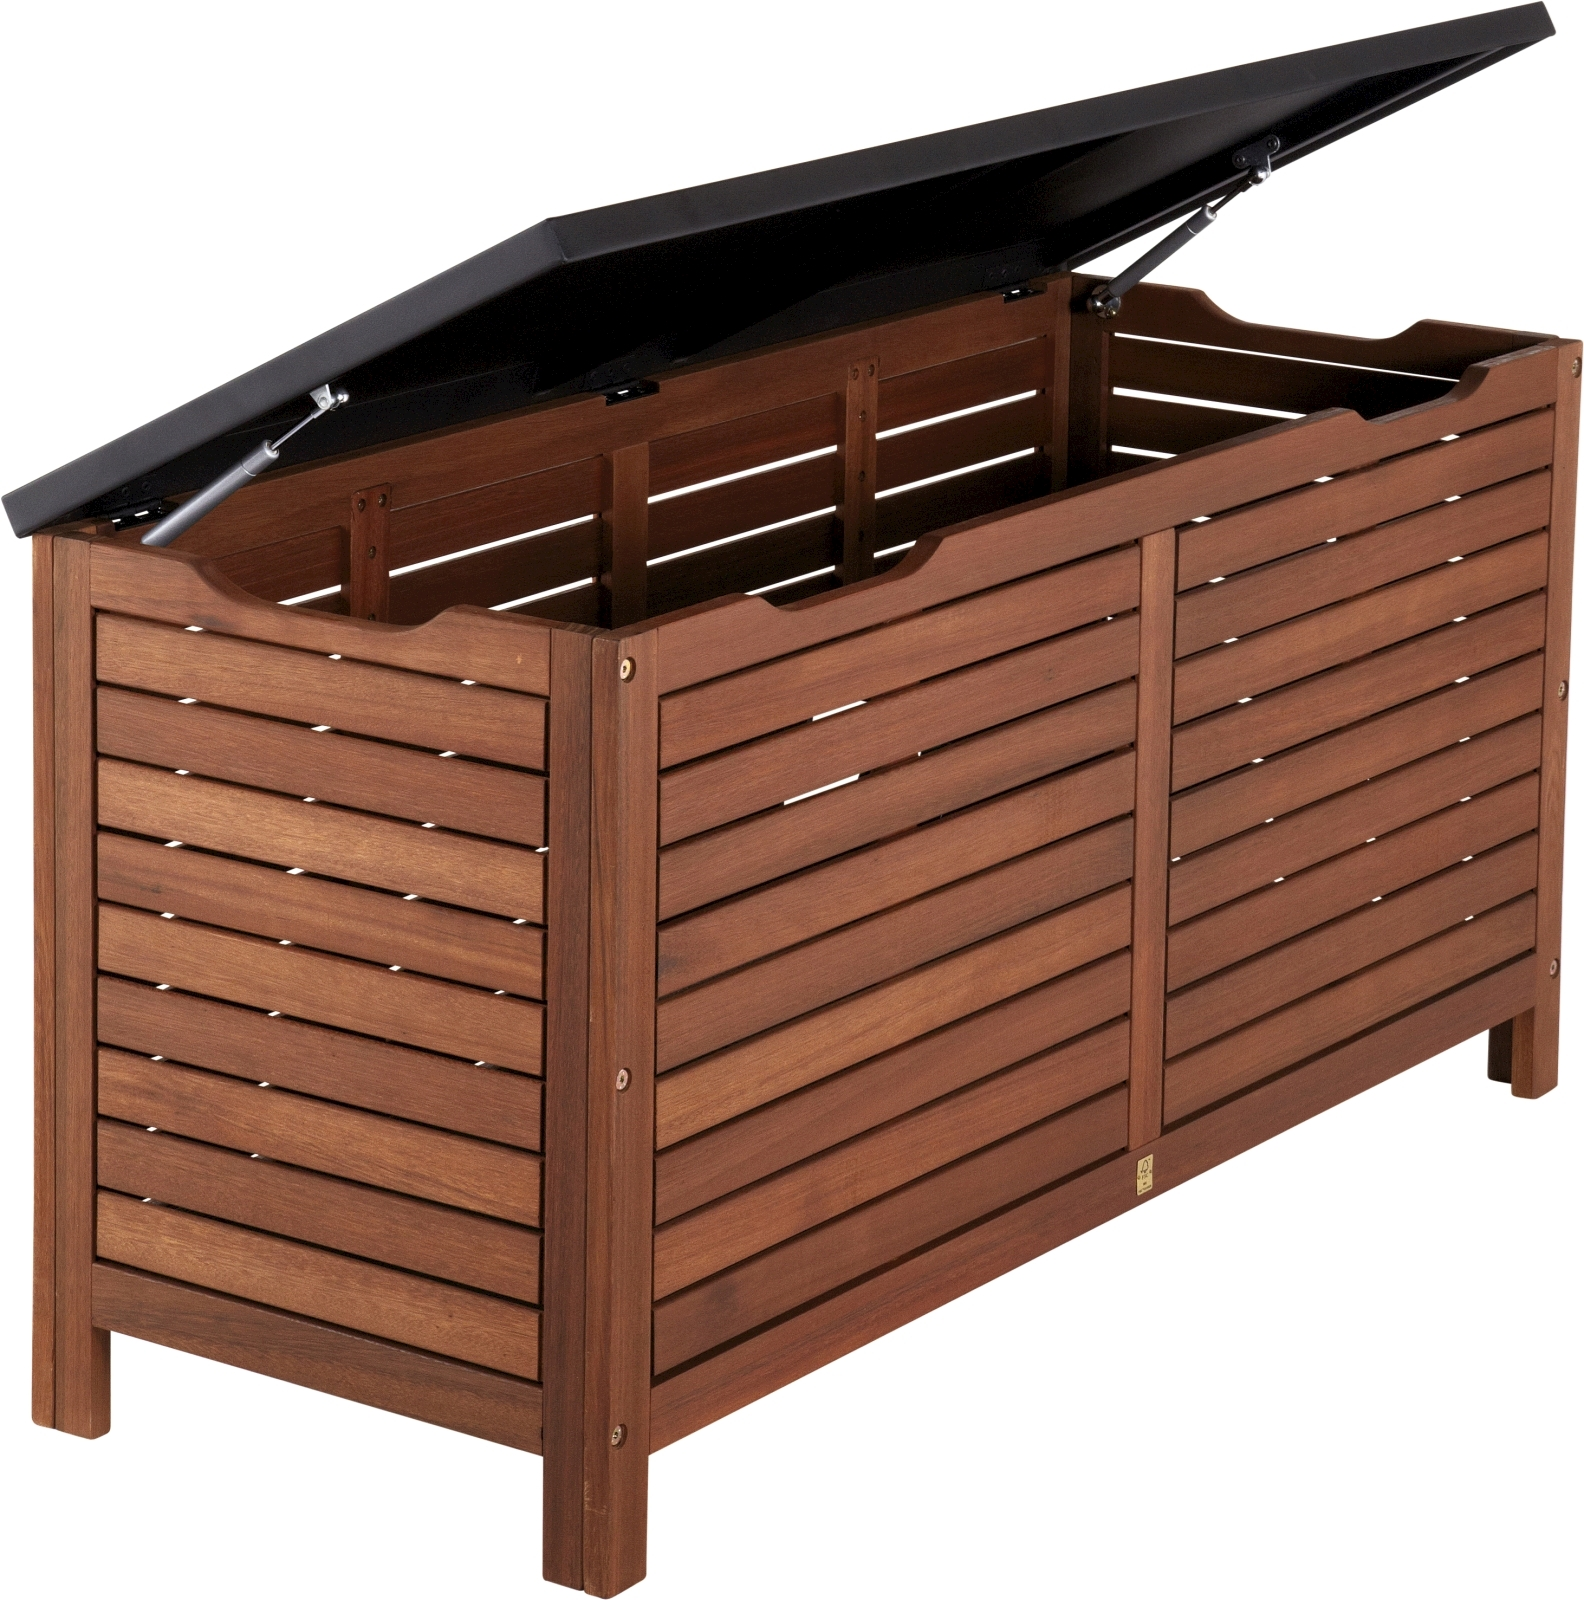 Kissenbox Holz Kissenbox 62 50 128 Cm Outdoormöbel Landi